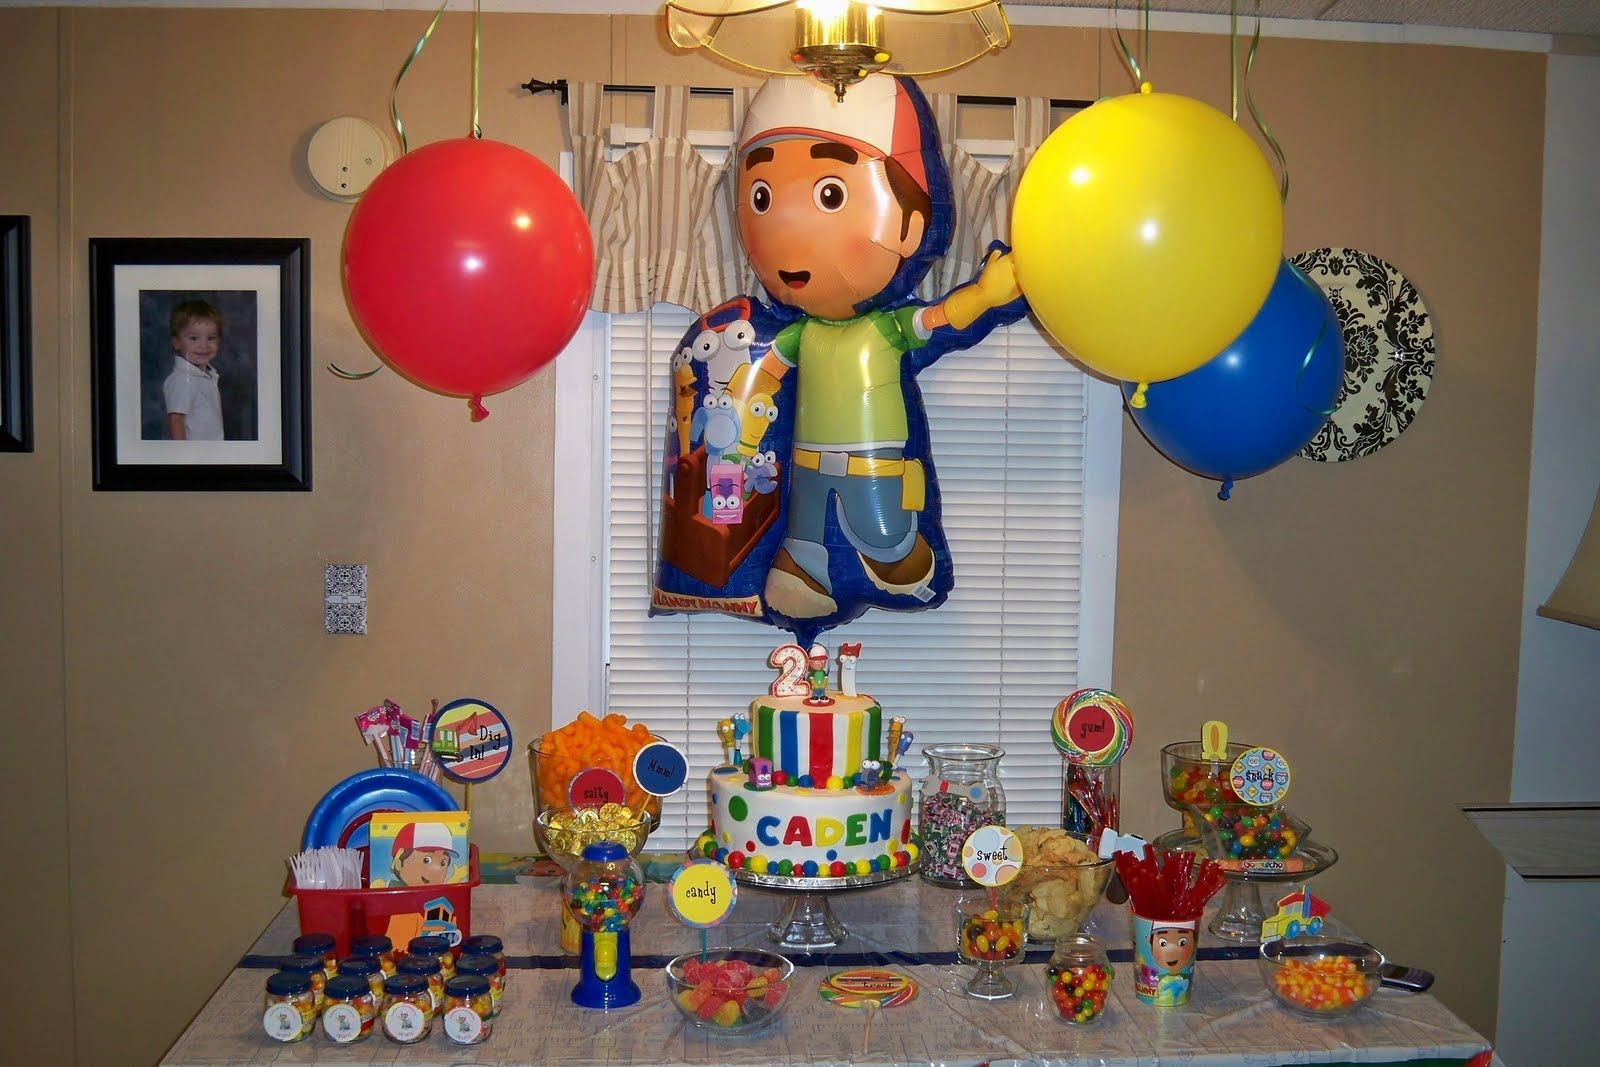 Handy manny birthday party kids party ideas pinterest for Handy manny decorations